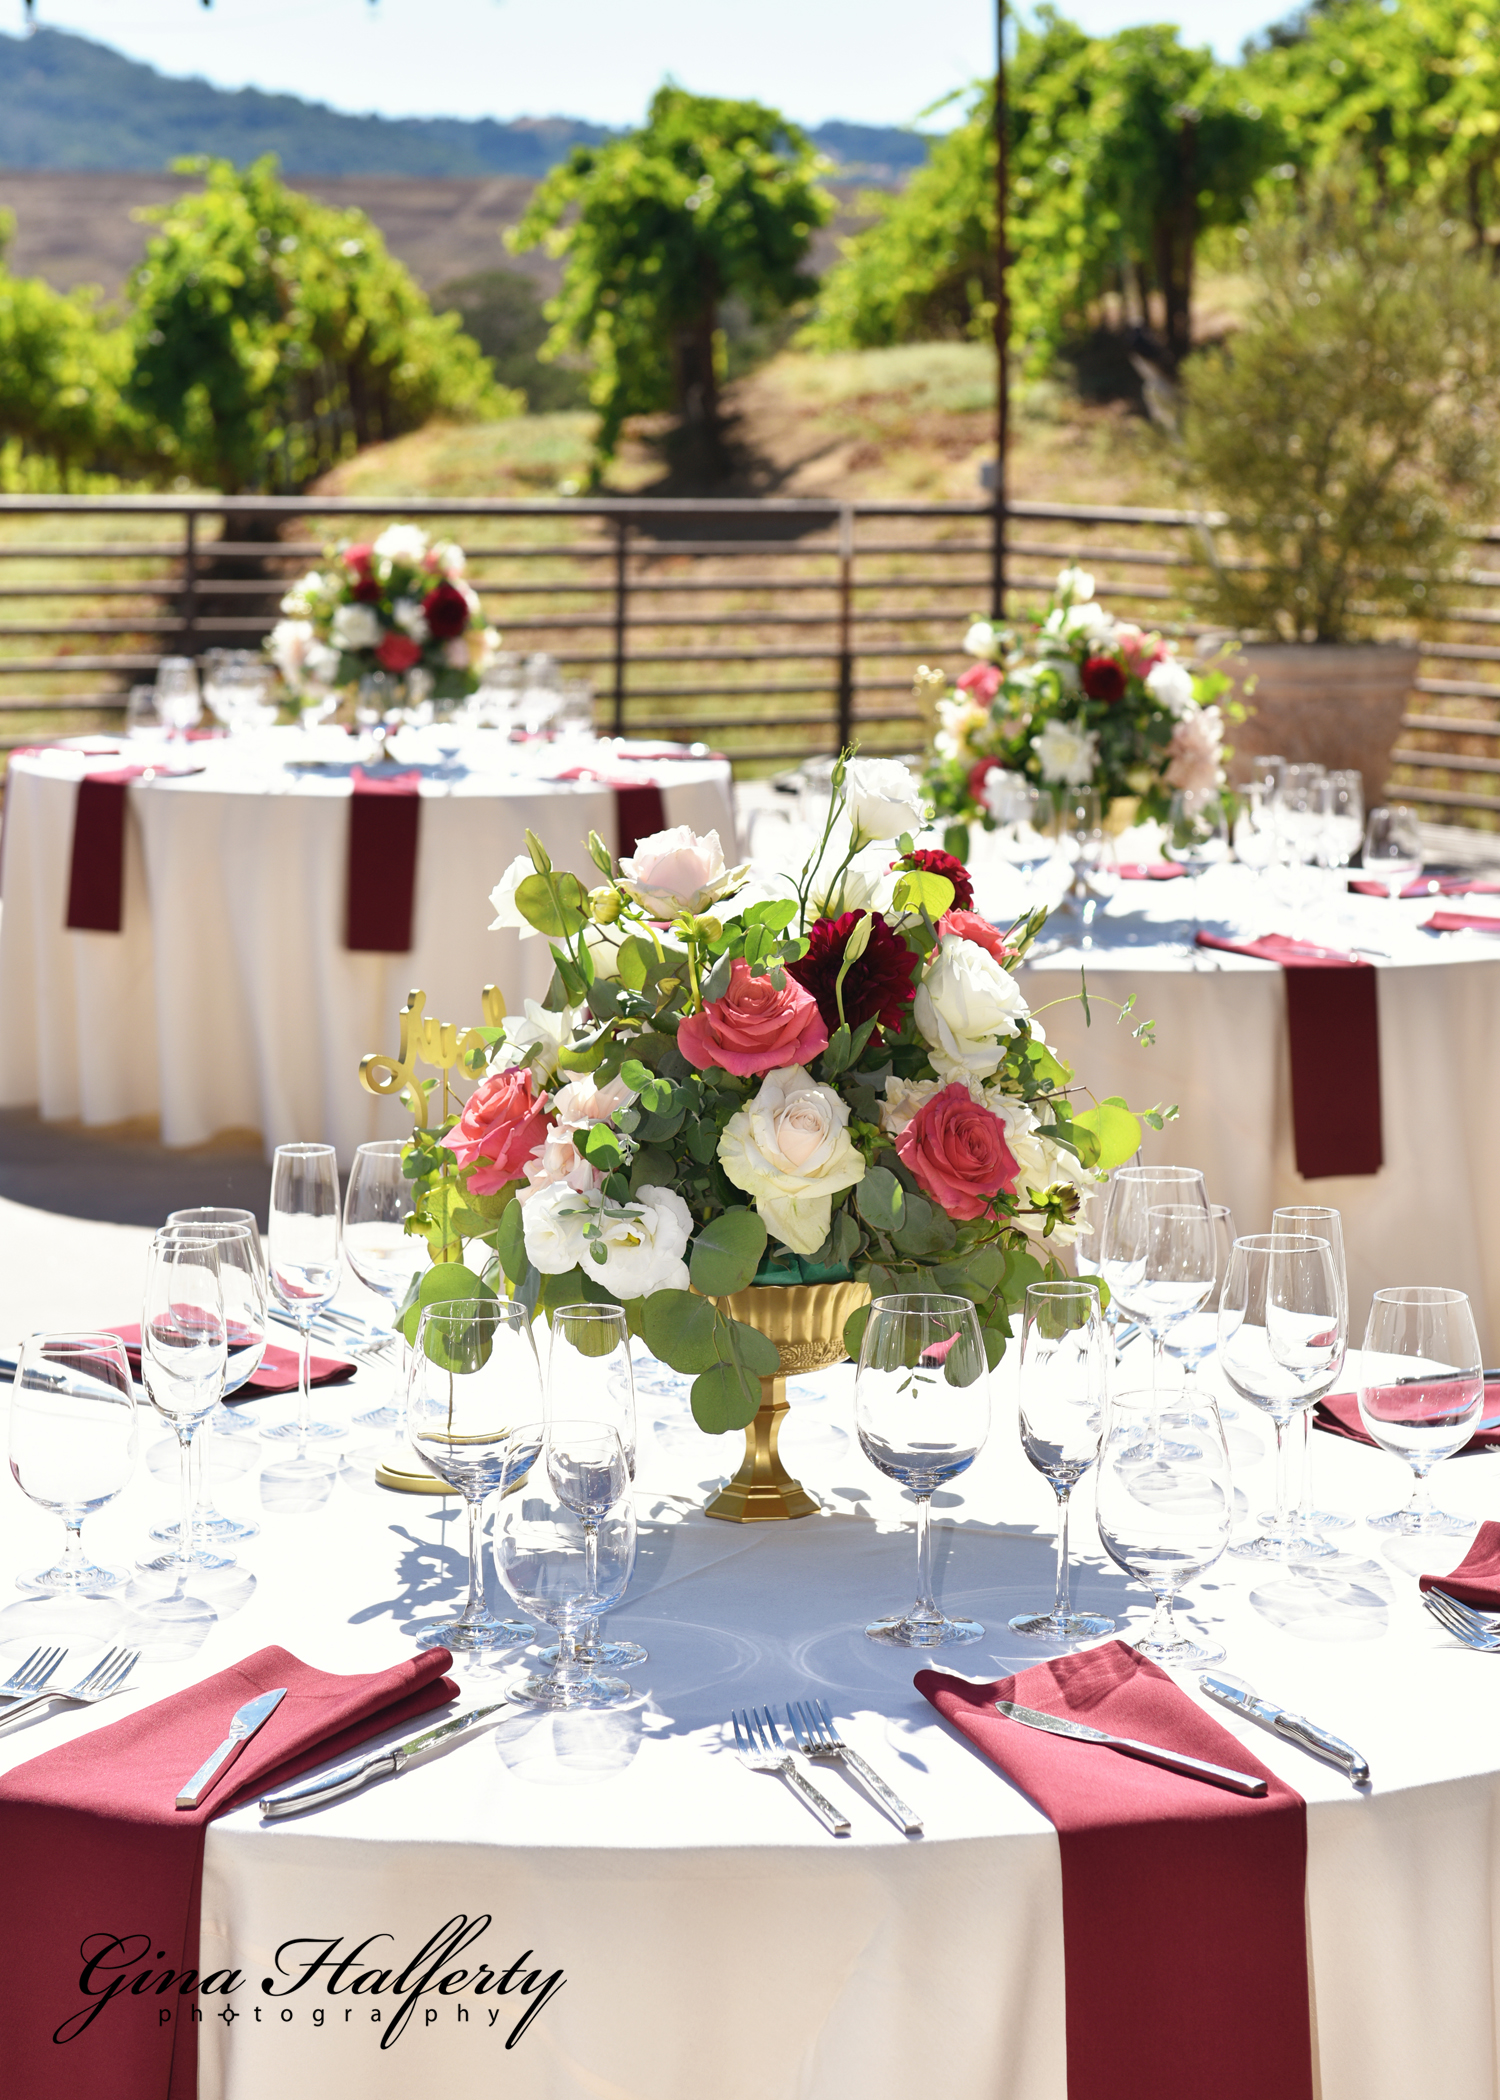 Centerpiece, gold compote container with fresh summer flowers in blush and white with pops of coral and burgundy. Sbragia winery Geyserville